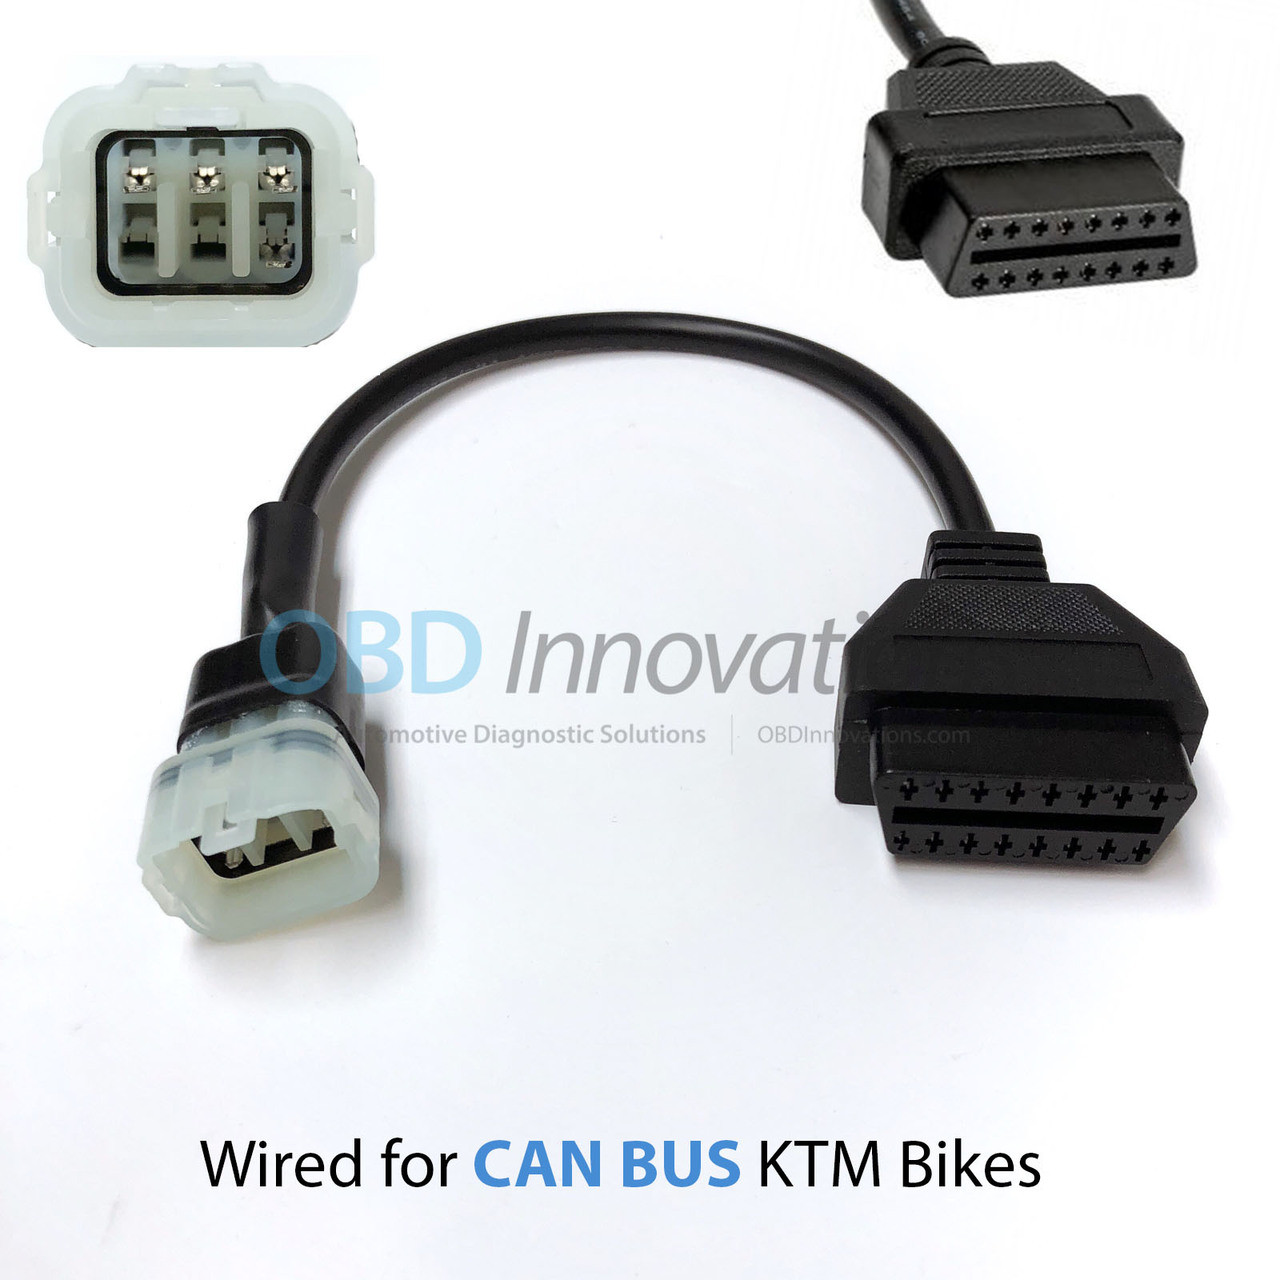 6 Pin to OBD2 Adapter Cable for KTM Duke & RC Motorcycles with US/Bosch Obd Connector To Rj Wiring Diagram on